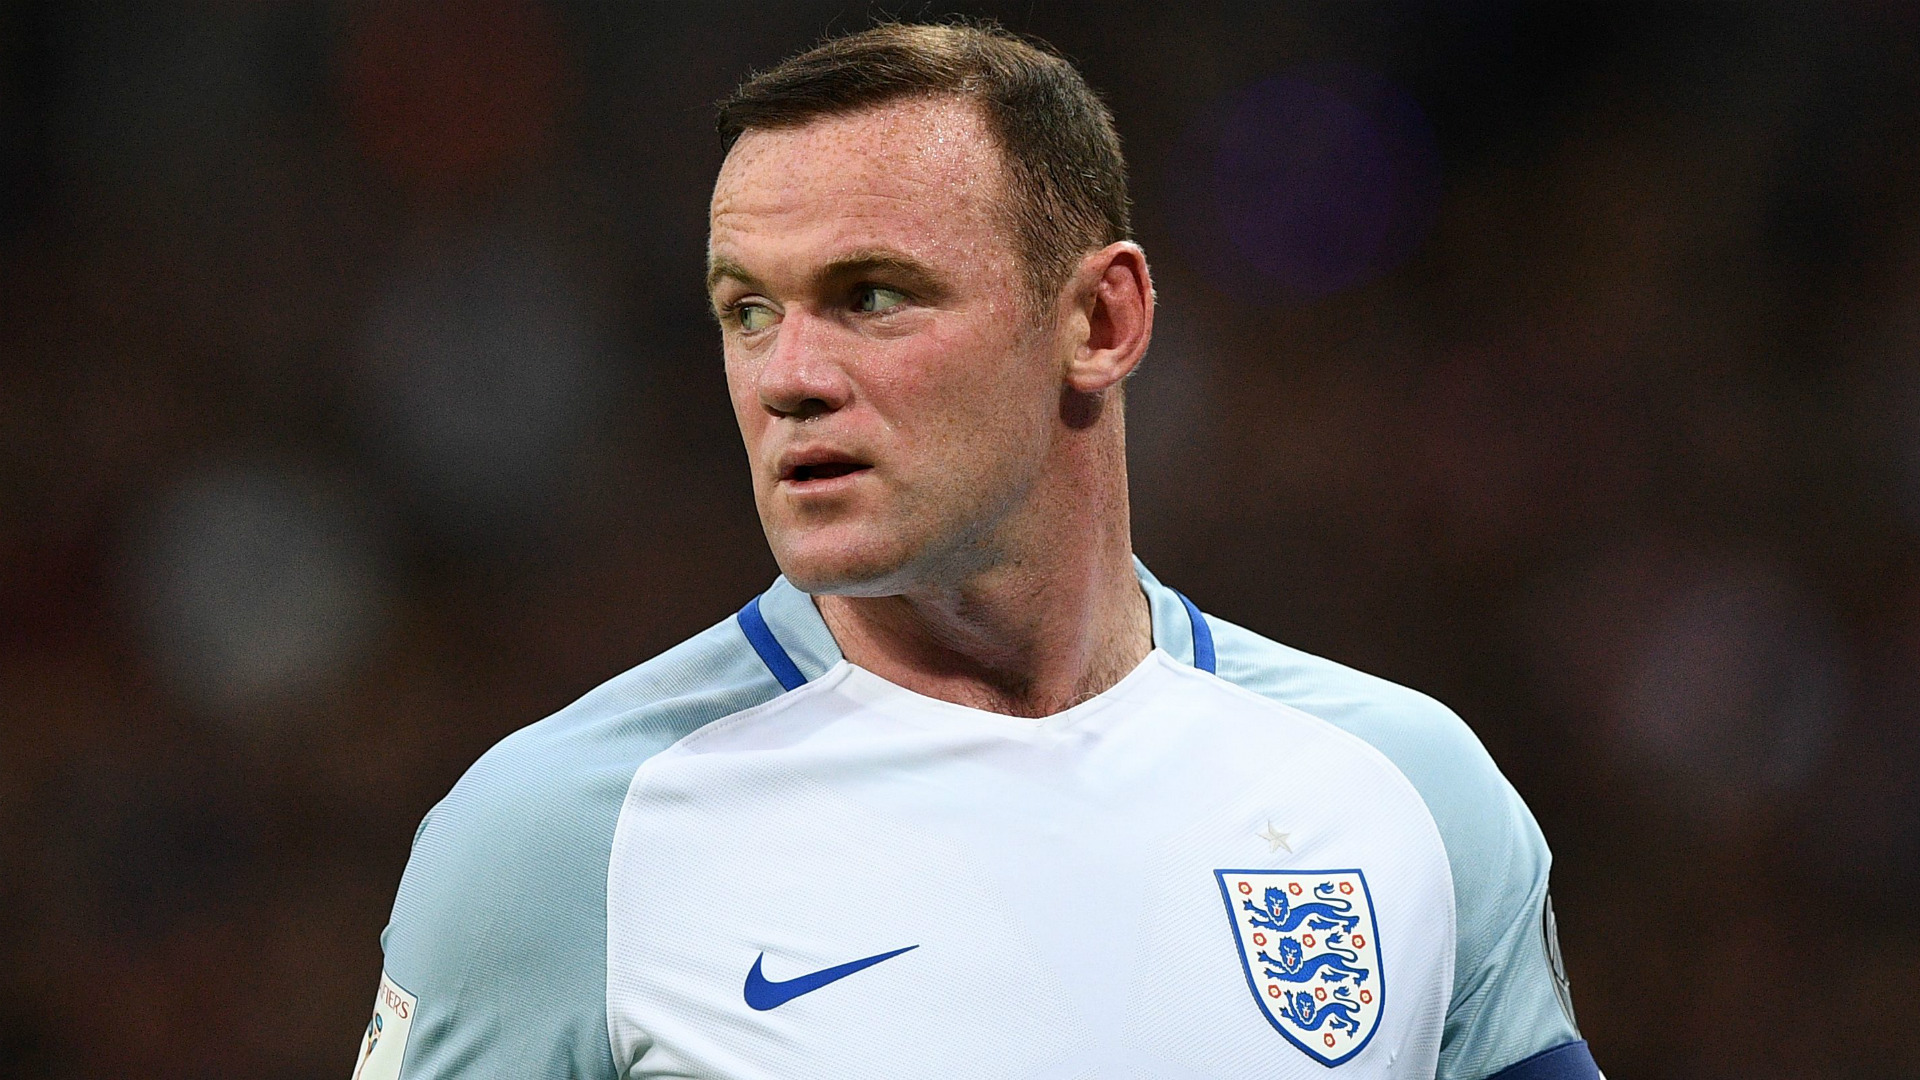 According To Wayne Rooney, Farewell Game Is A 'Huge Honor'